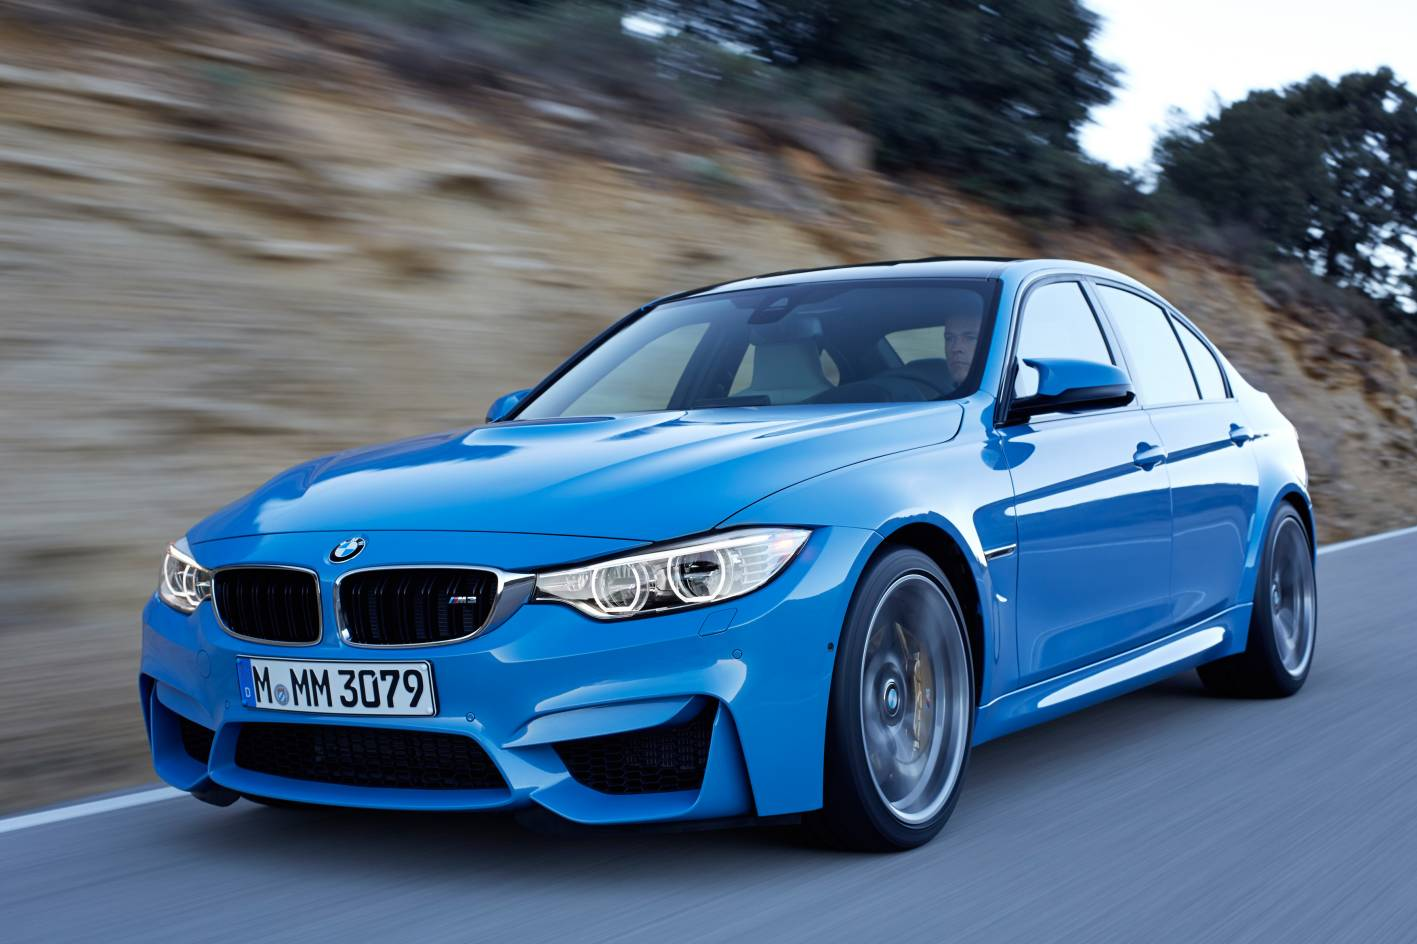 bmw cars news 2014 m3 and m4 coupe pricing and specification. Black Bedroom Furniture Sets. Home Design Ideas